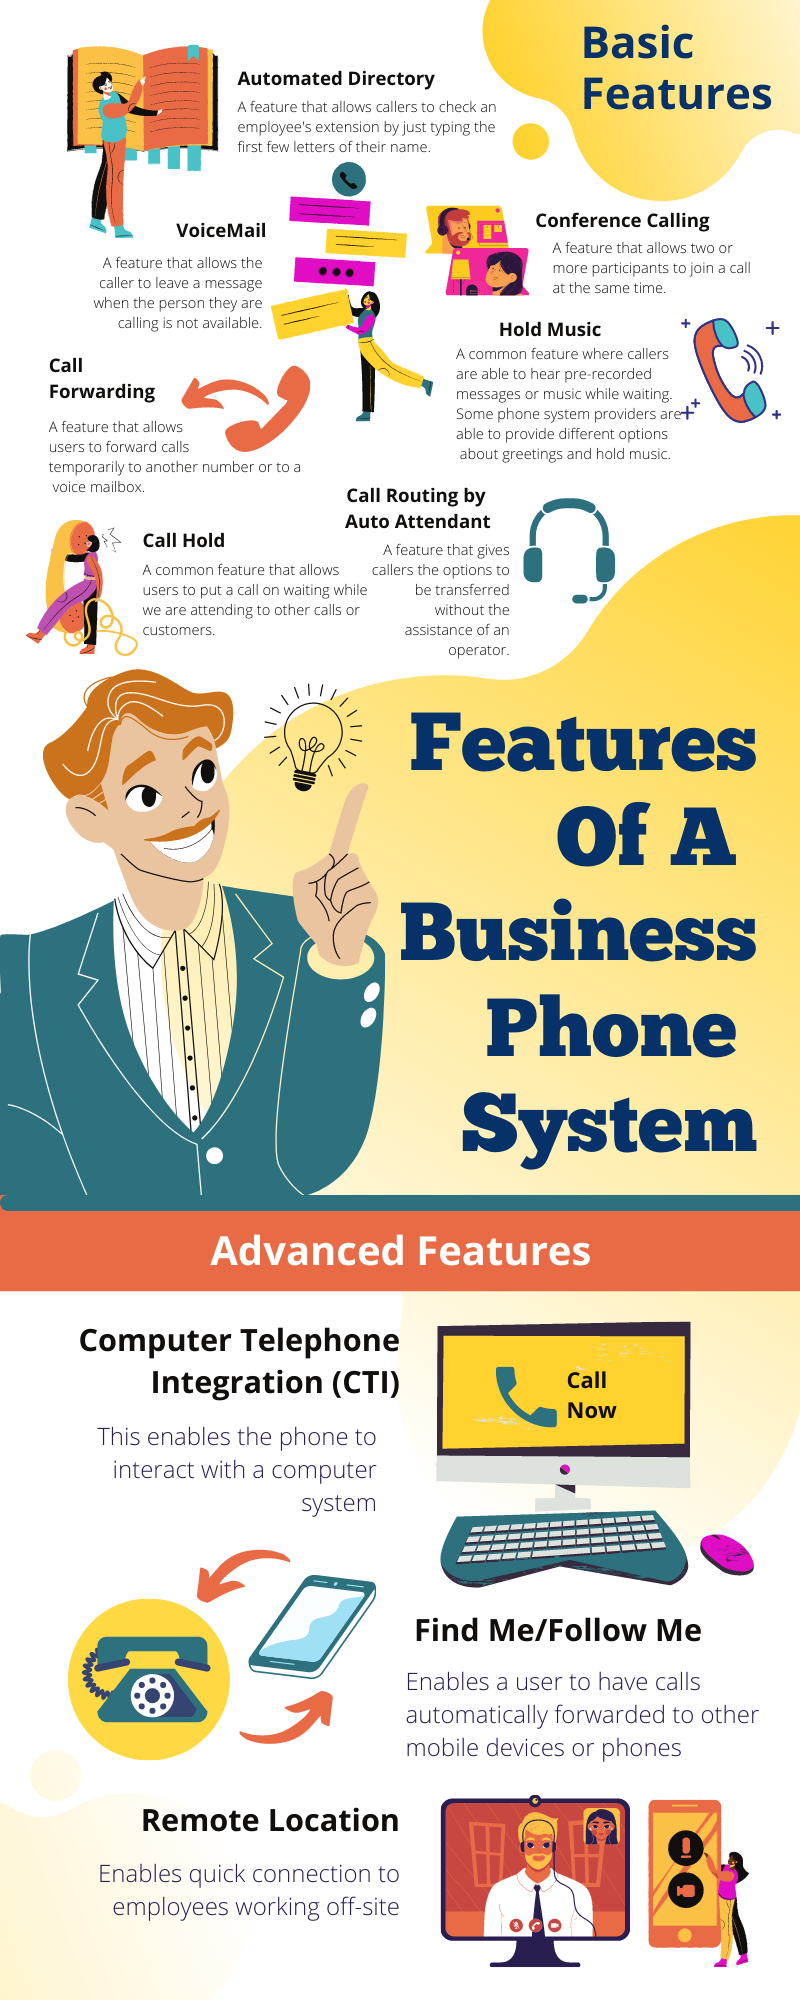 features of a telephone system infographic showcase one of the deciding factors when buying a business phone system